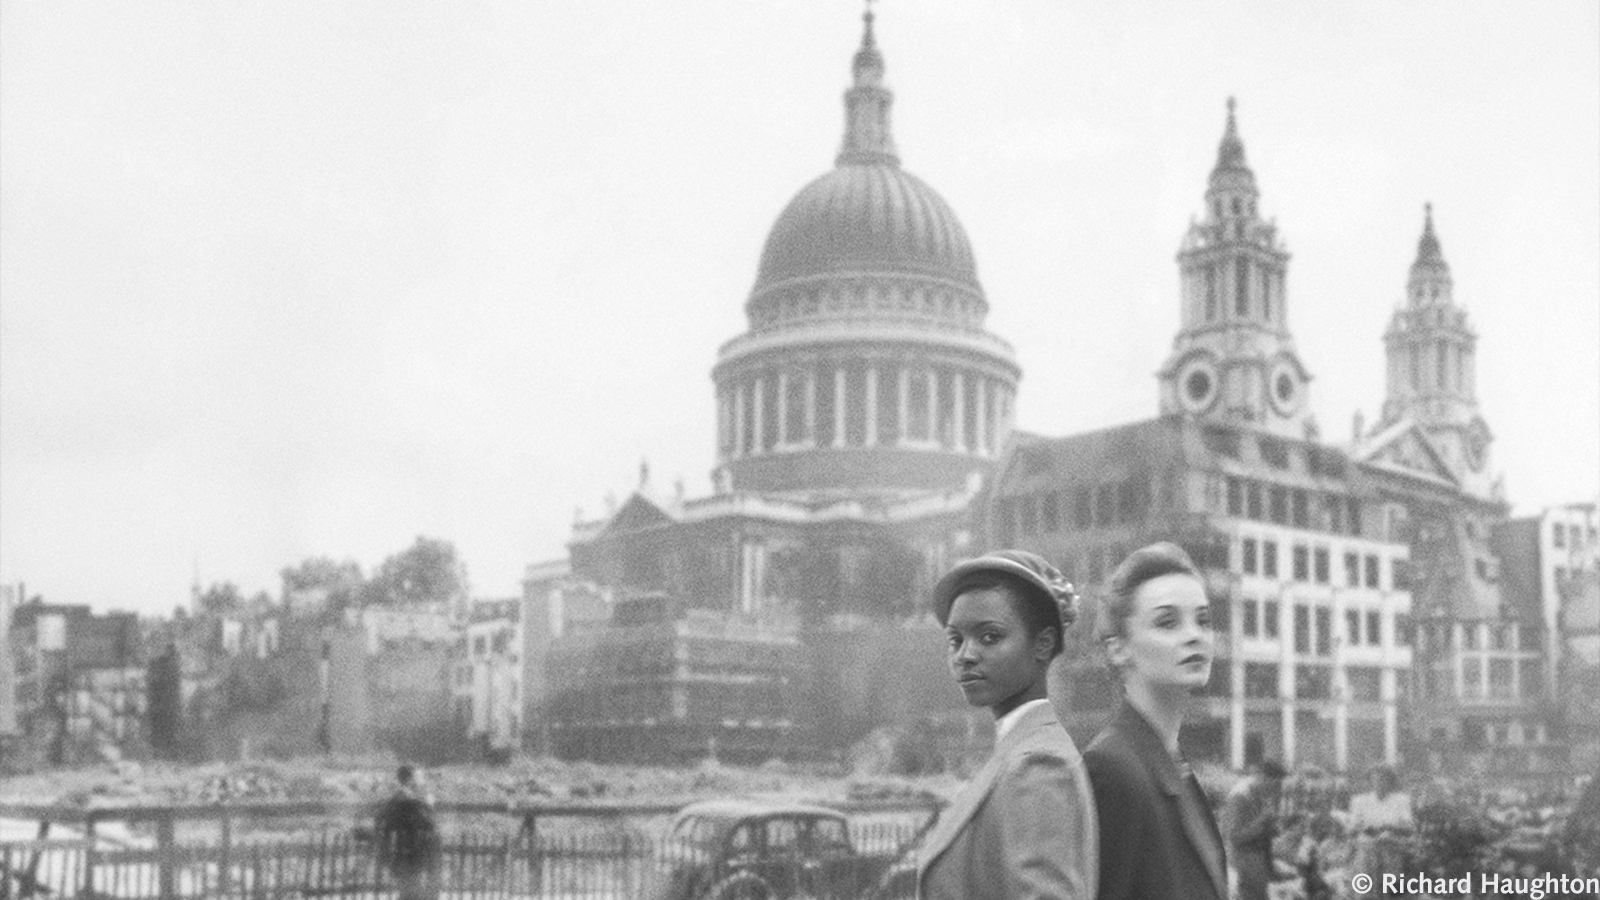 Banner image for article by Hannah Lowe about Andrea Levy's Small Island. Showing two women outside photoshopped war-torn St Paul's Cathedral.